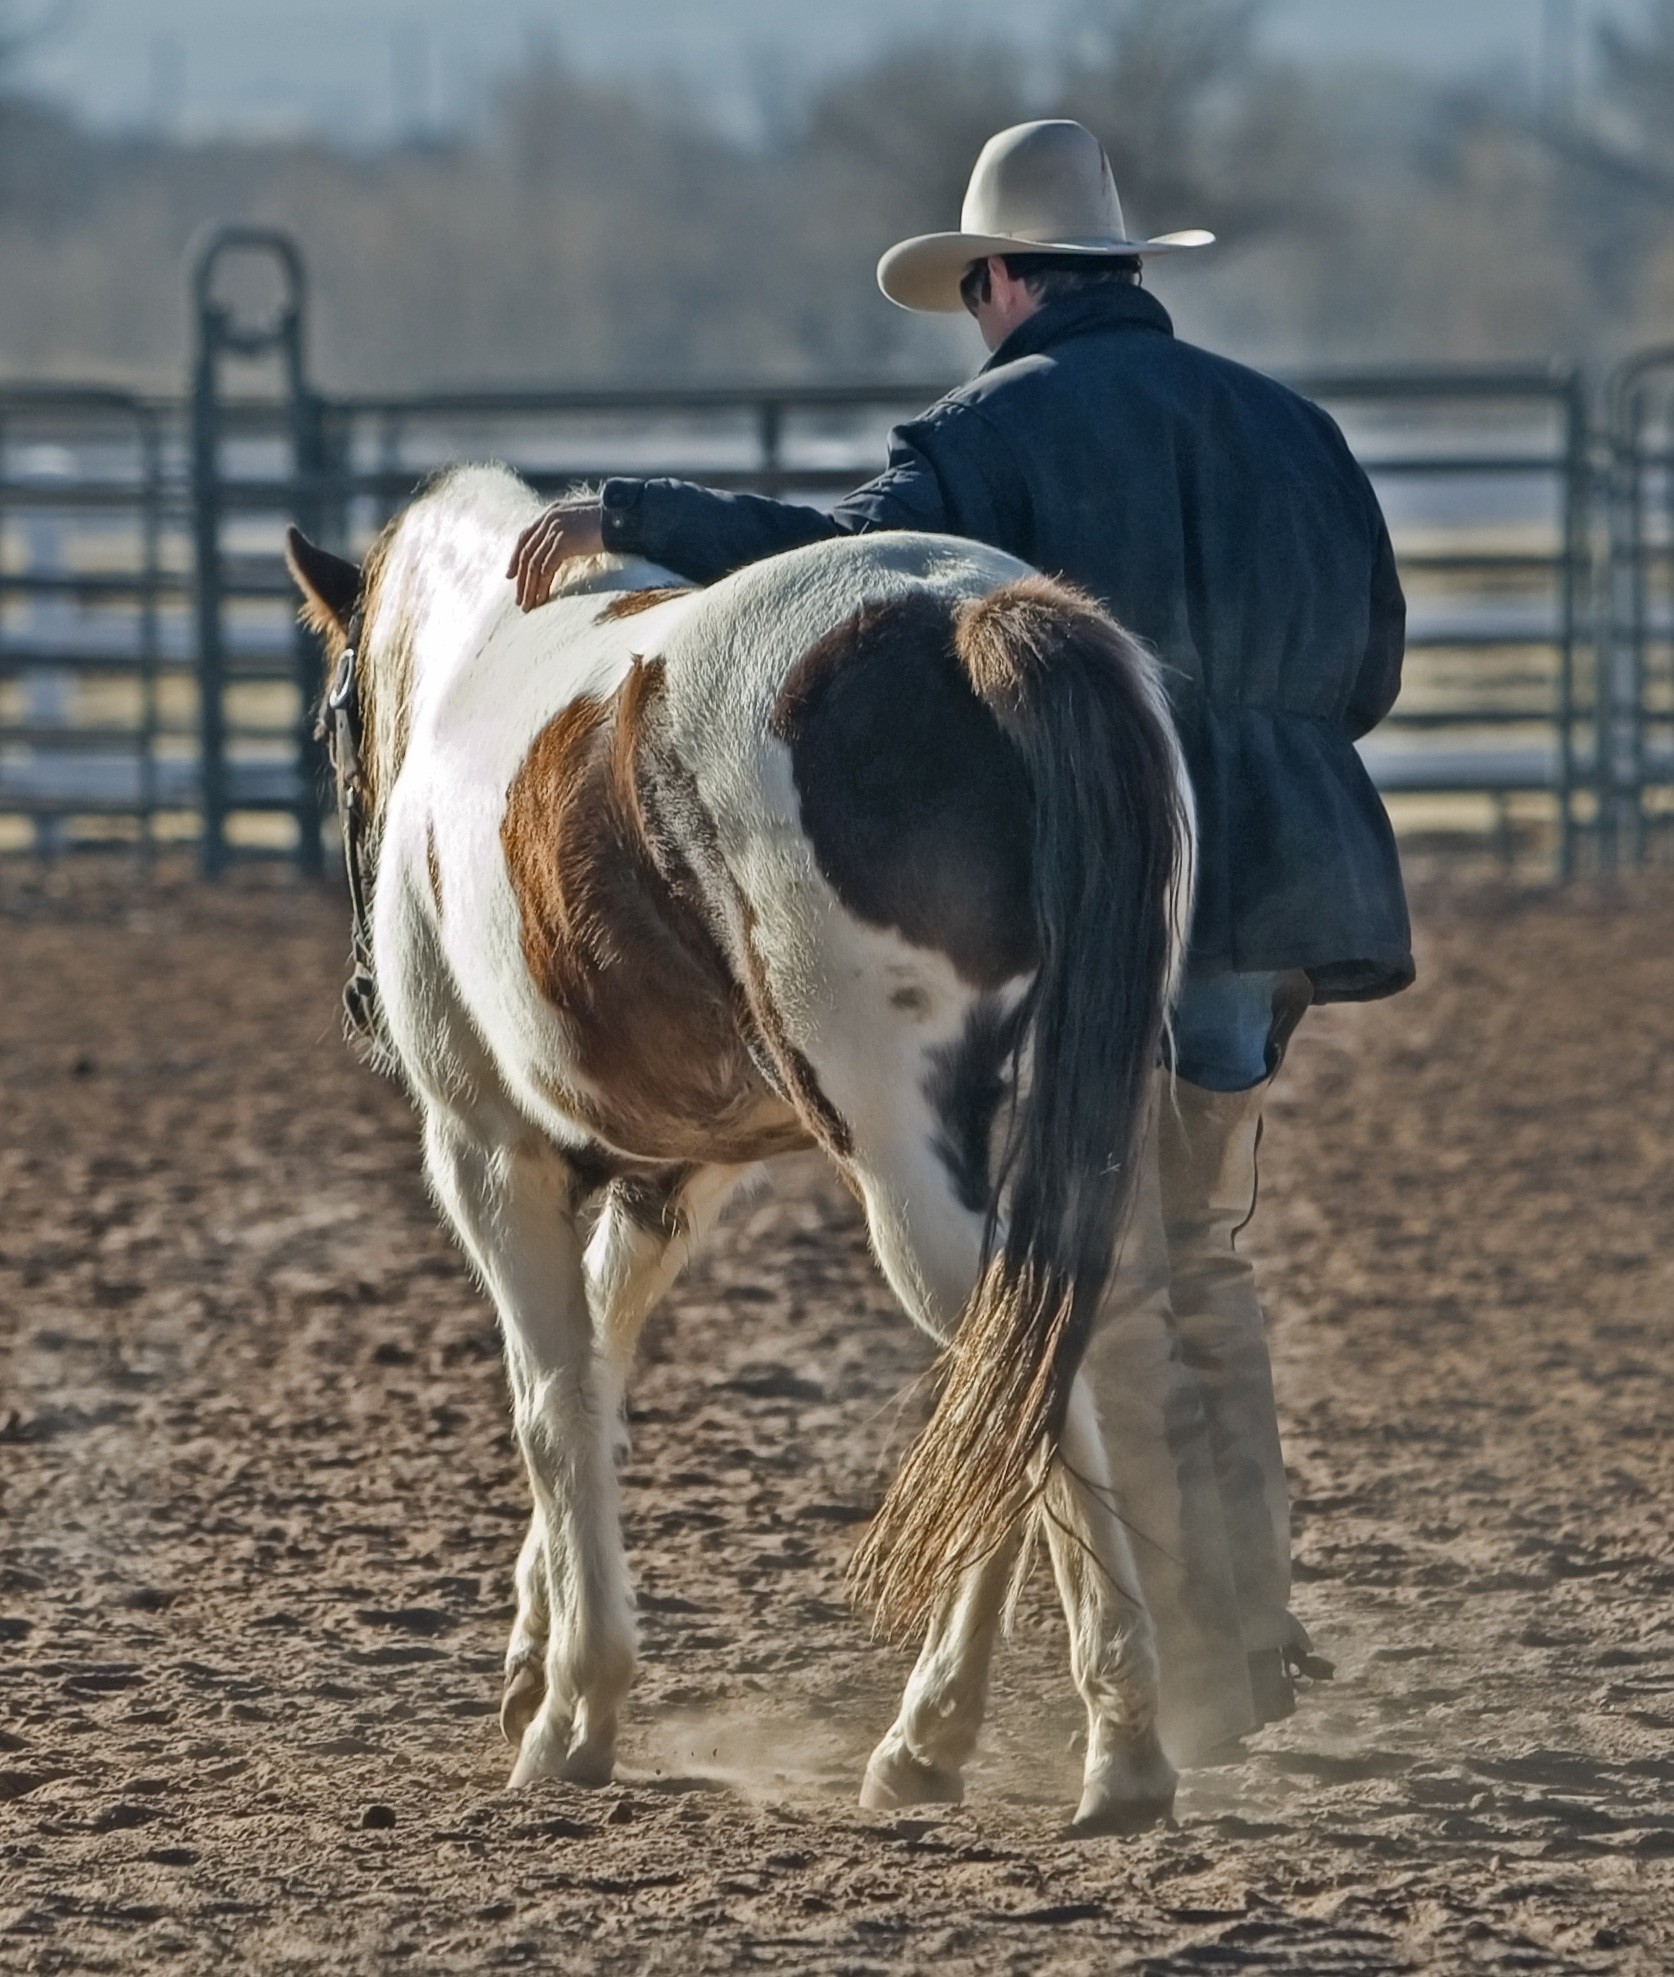 Free stock photo of animal, horse, country, western